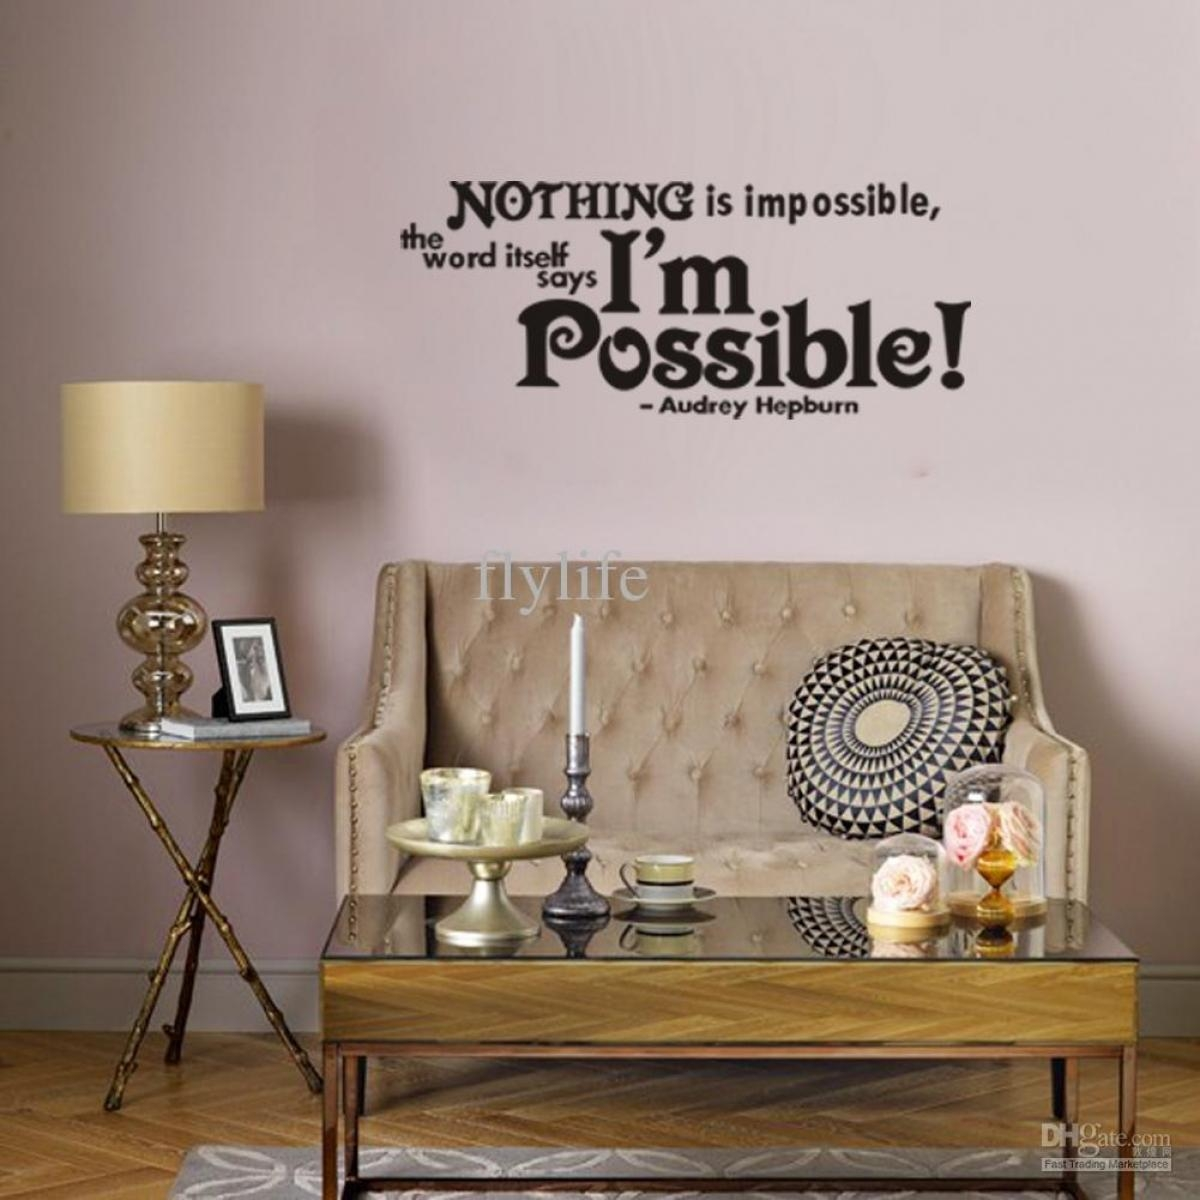 Wall Decal: Awesome Walmart Wall Decals Quotes Quotes Decals With Regard To Walmart Wall Stickers (Image 19 of 20)